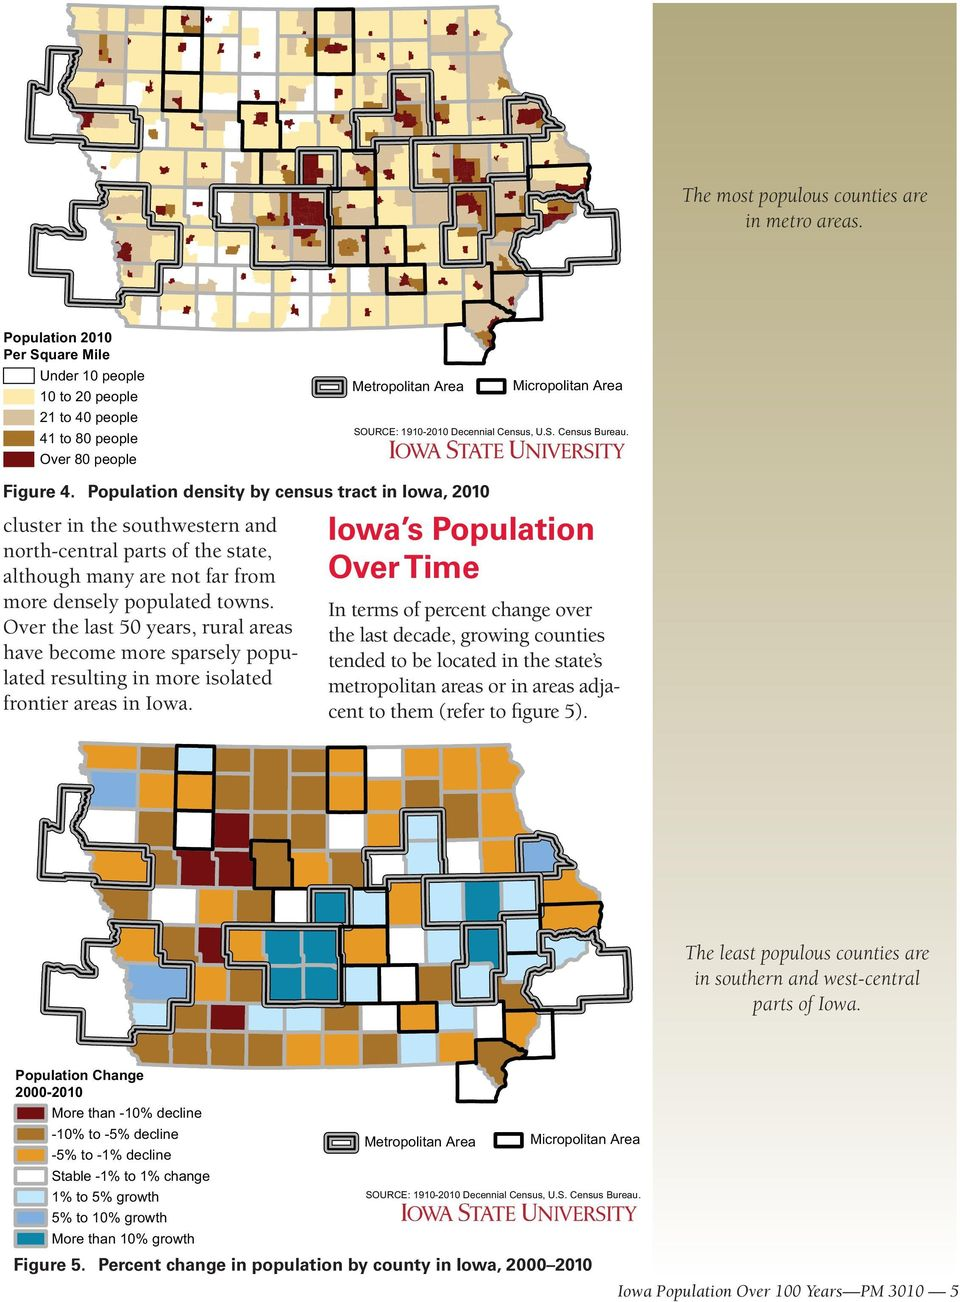 Figure 4. Population density by census tract in Iowa, 2010 cluster in the southwestern and north-central parts of the state, although many are not far from more densely populated towns.